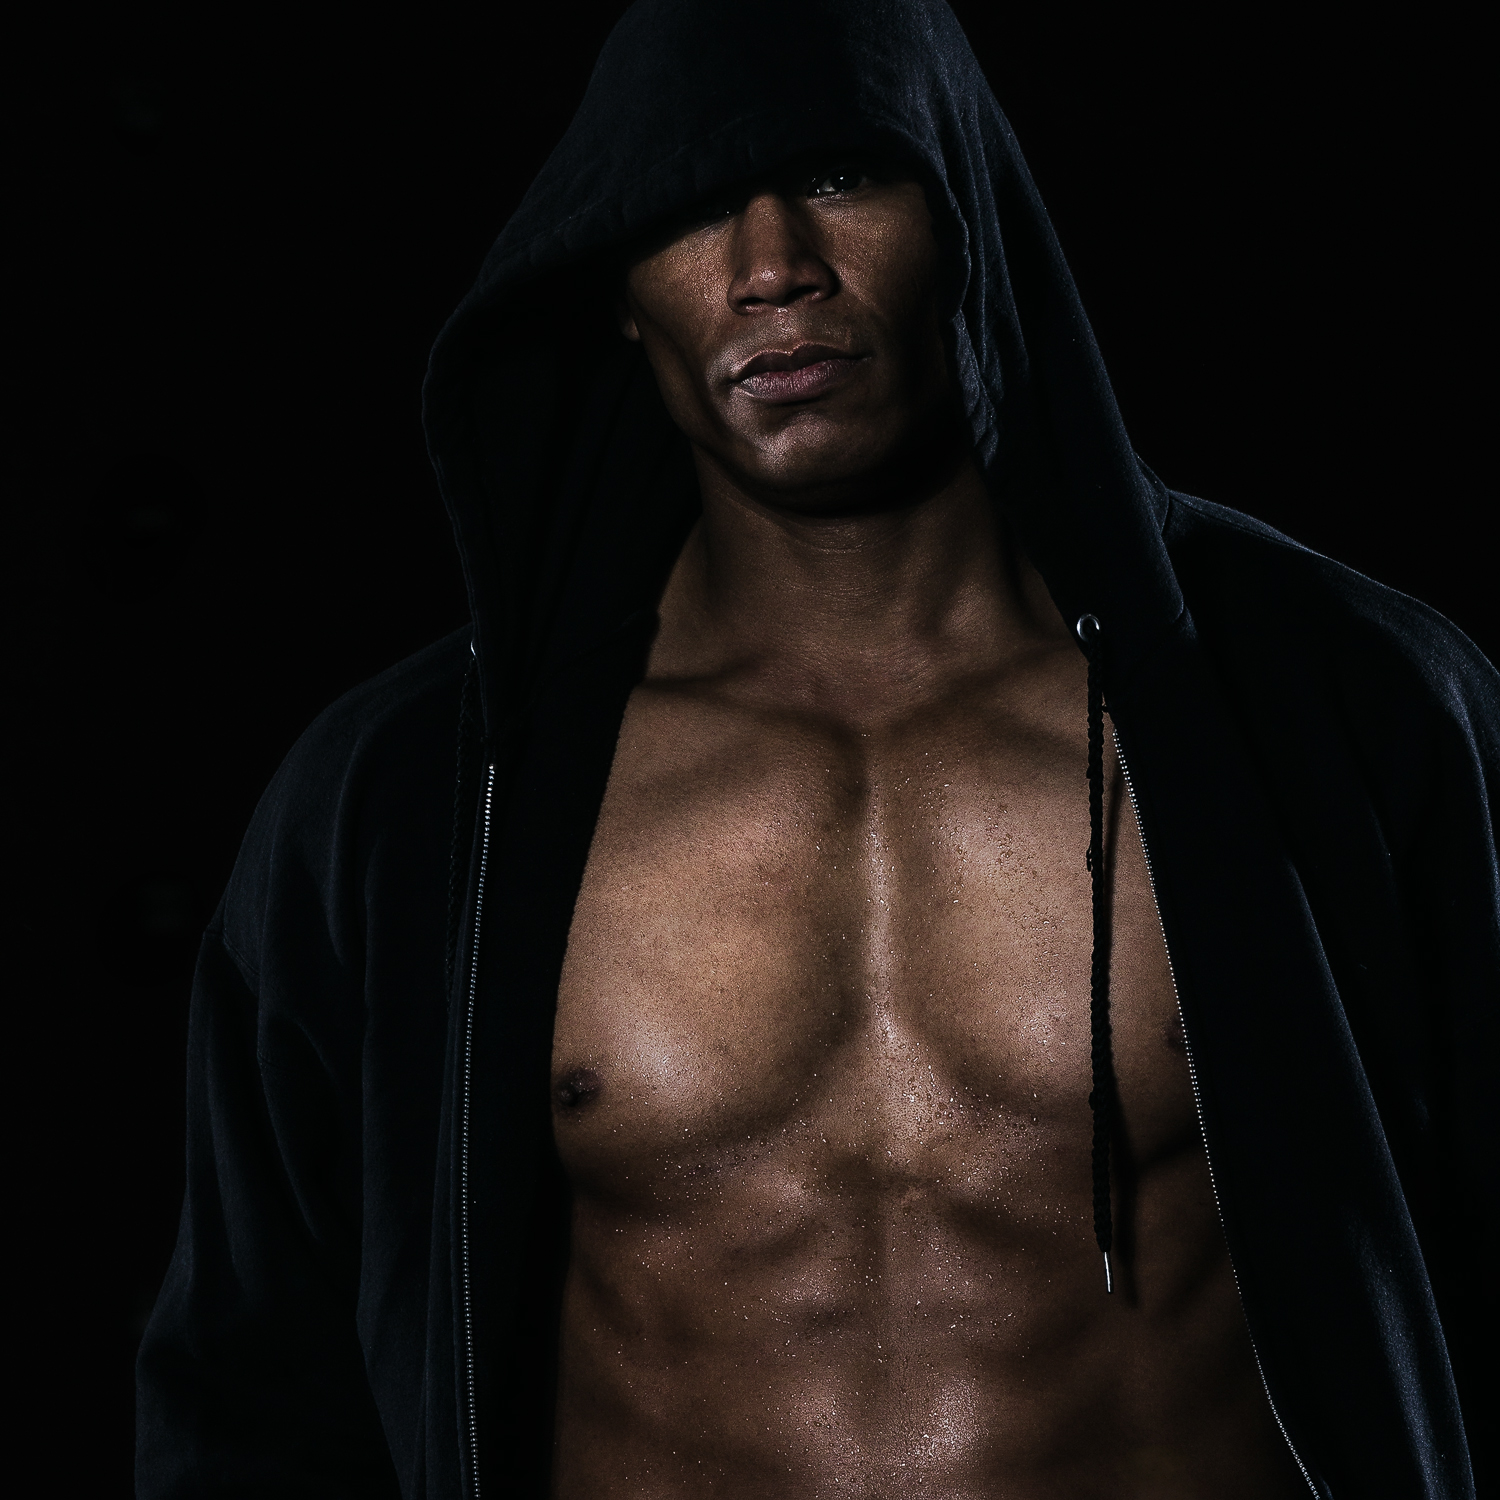 sports-fitness-photography-workout-exercise-health-black-male-model-Kyro-Parry-photo-by-Kevin-Patrick-Robbins-01-1500.jpg